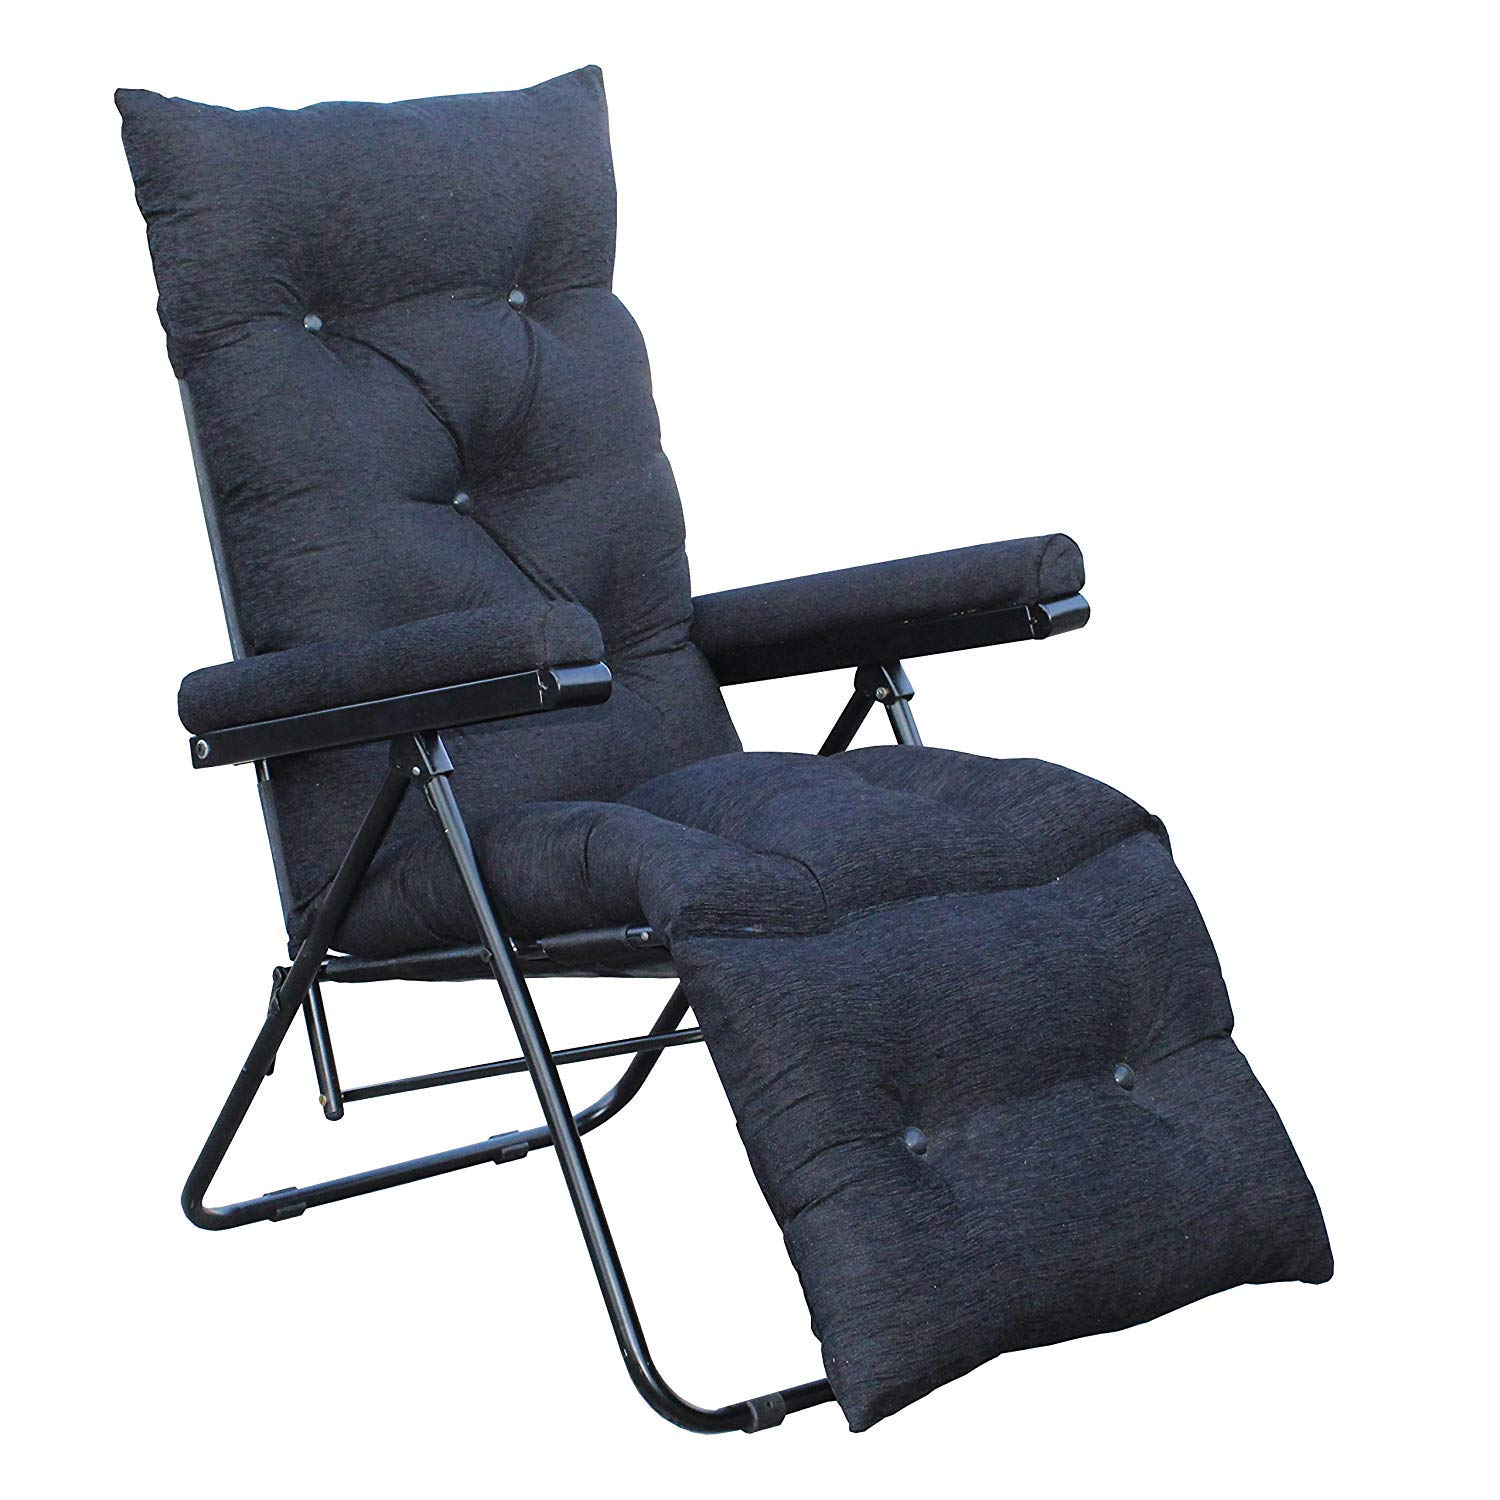 Spacecrafts Recliner Folding Easy Chair for Home Relax (LEC, Black)